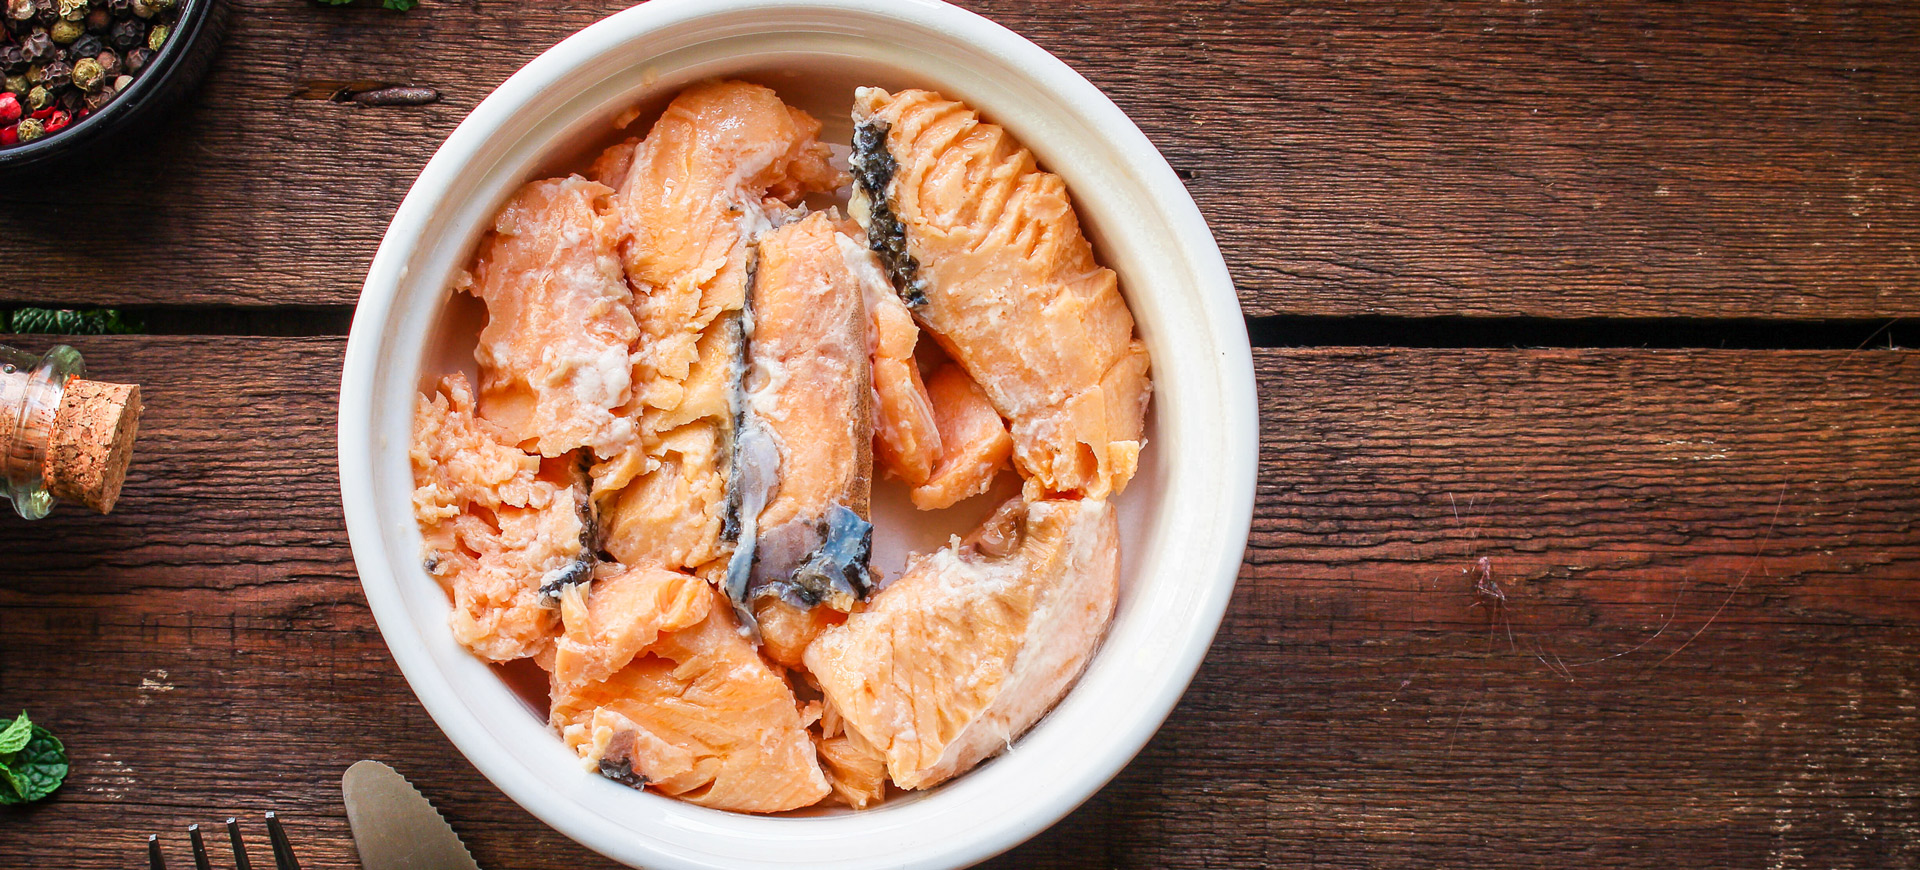 What is Canned Fish?